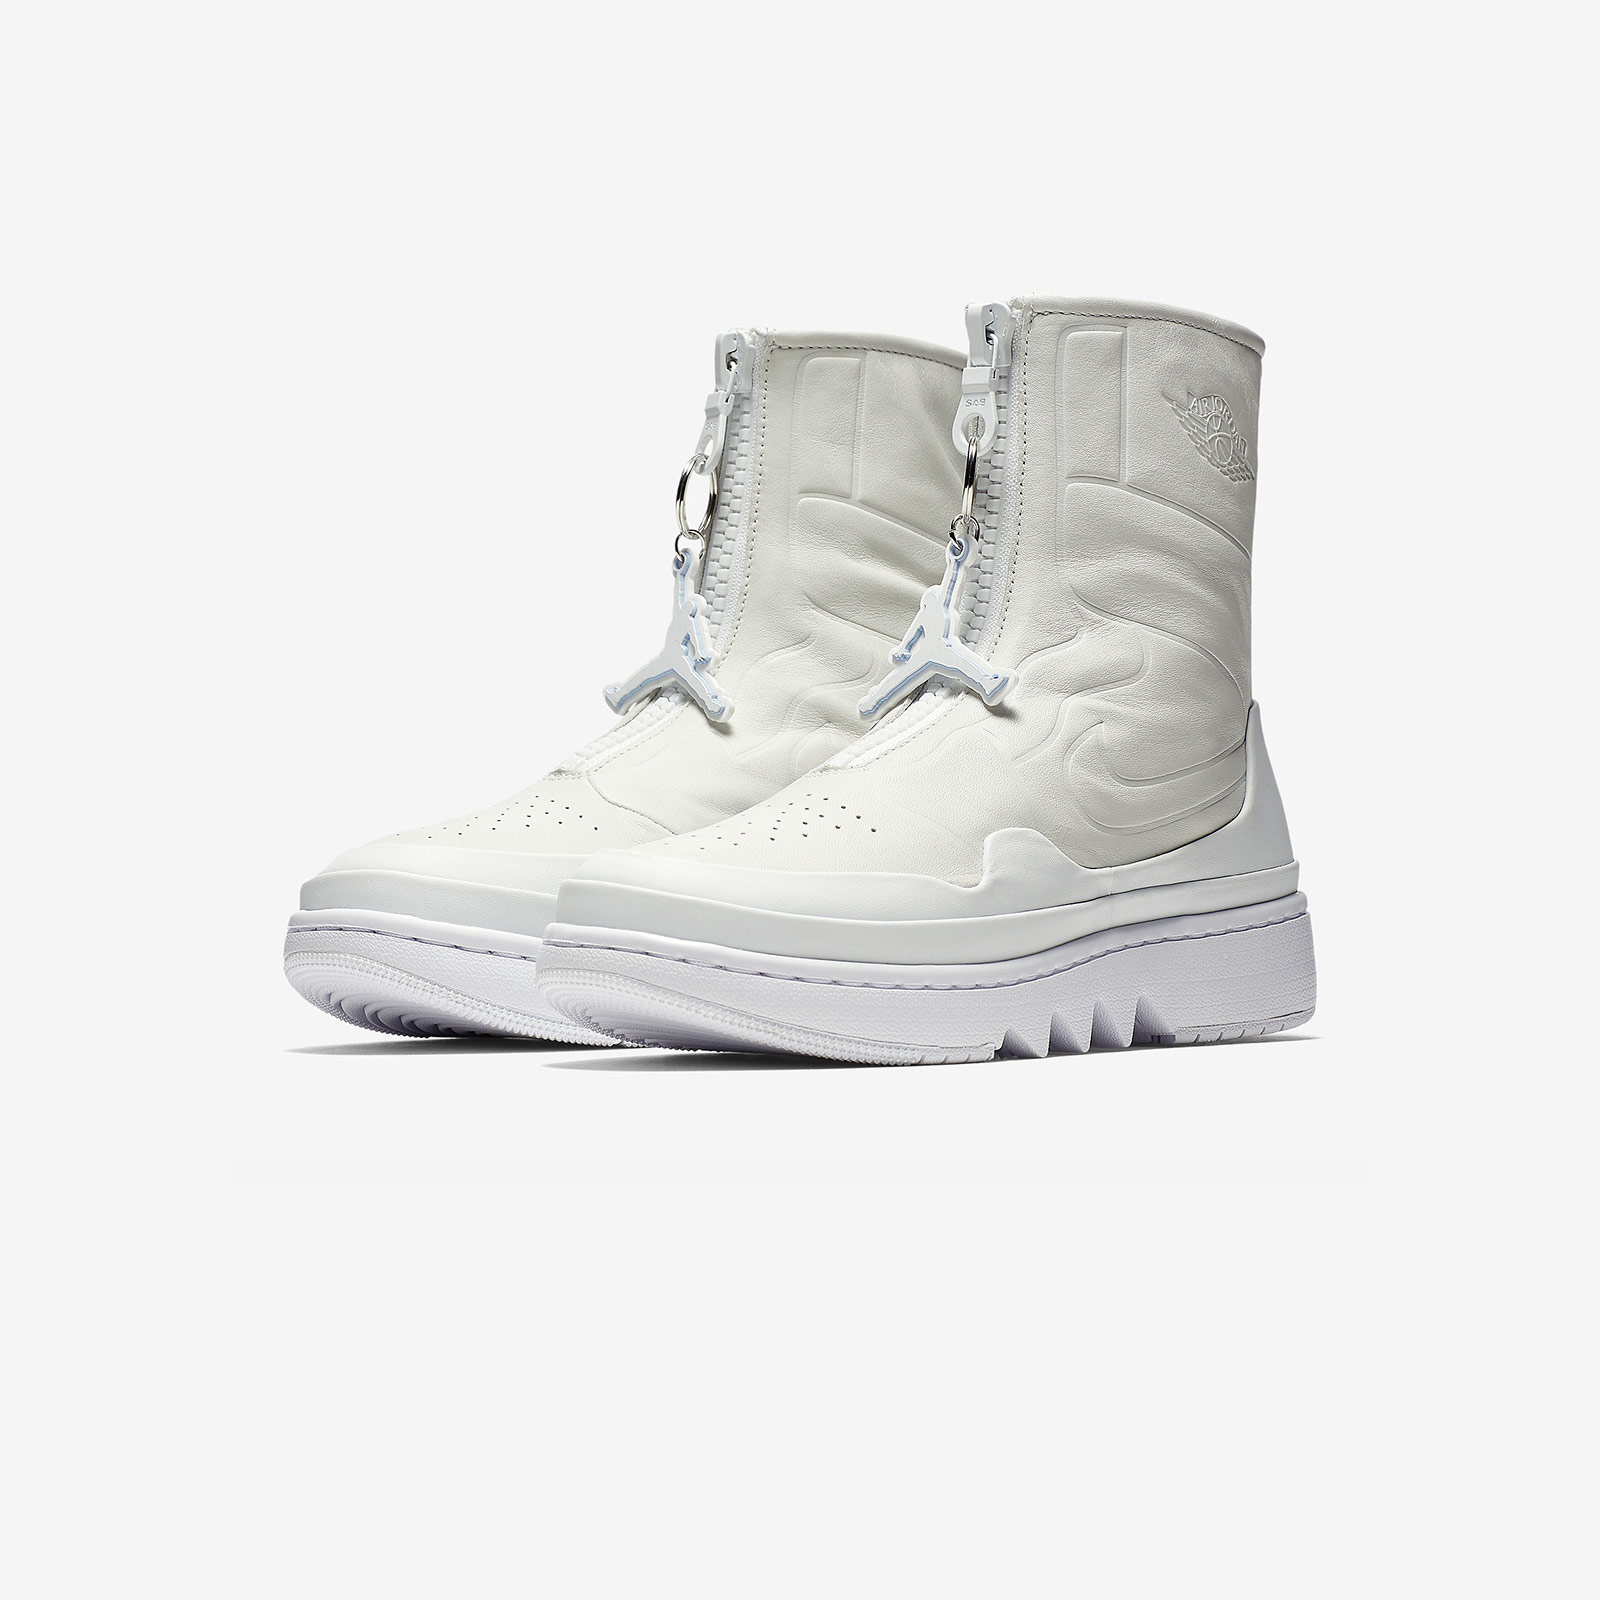 Nike AIR JORDAN 1 JESTER XX HIGH TOP SNEAKERS Clearance For Nice Pictures Cheap Price Wholesale Price For Sale TOUwp